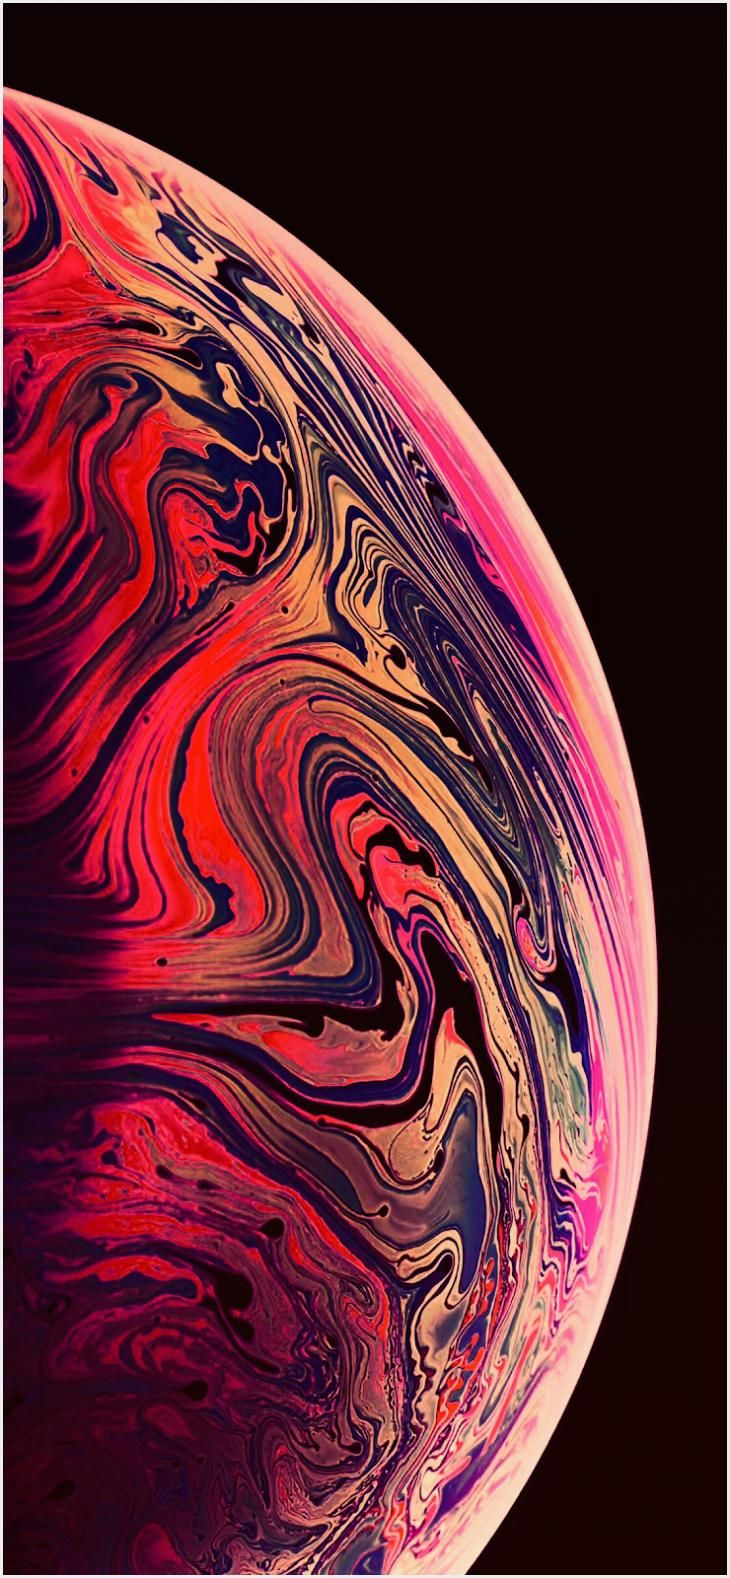 474 23 Iphone Xs Max 4k Wallpaper Ideas In 2020 Apple Wallpaper Iphone Iphone Homescreen Wallpaper Iphone Wallpaper Ios